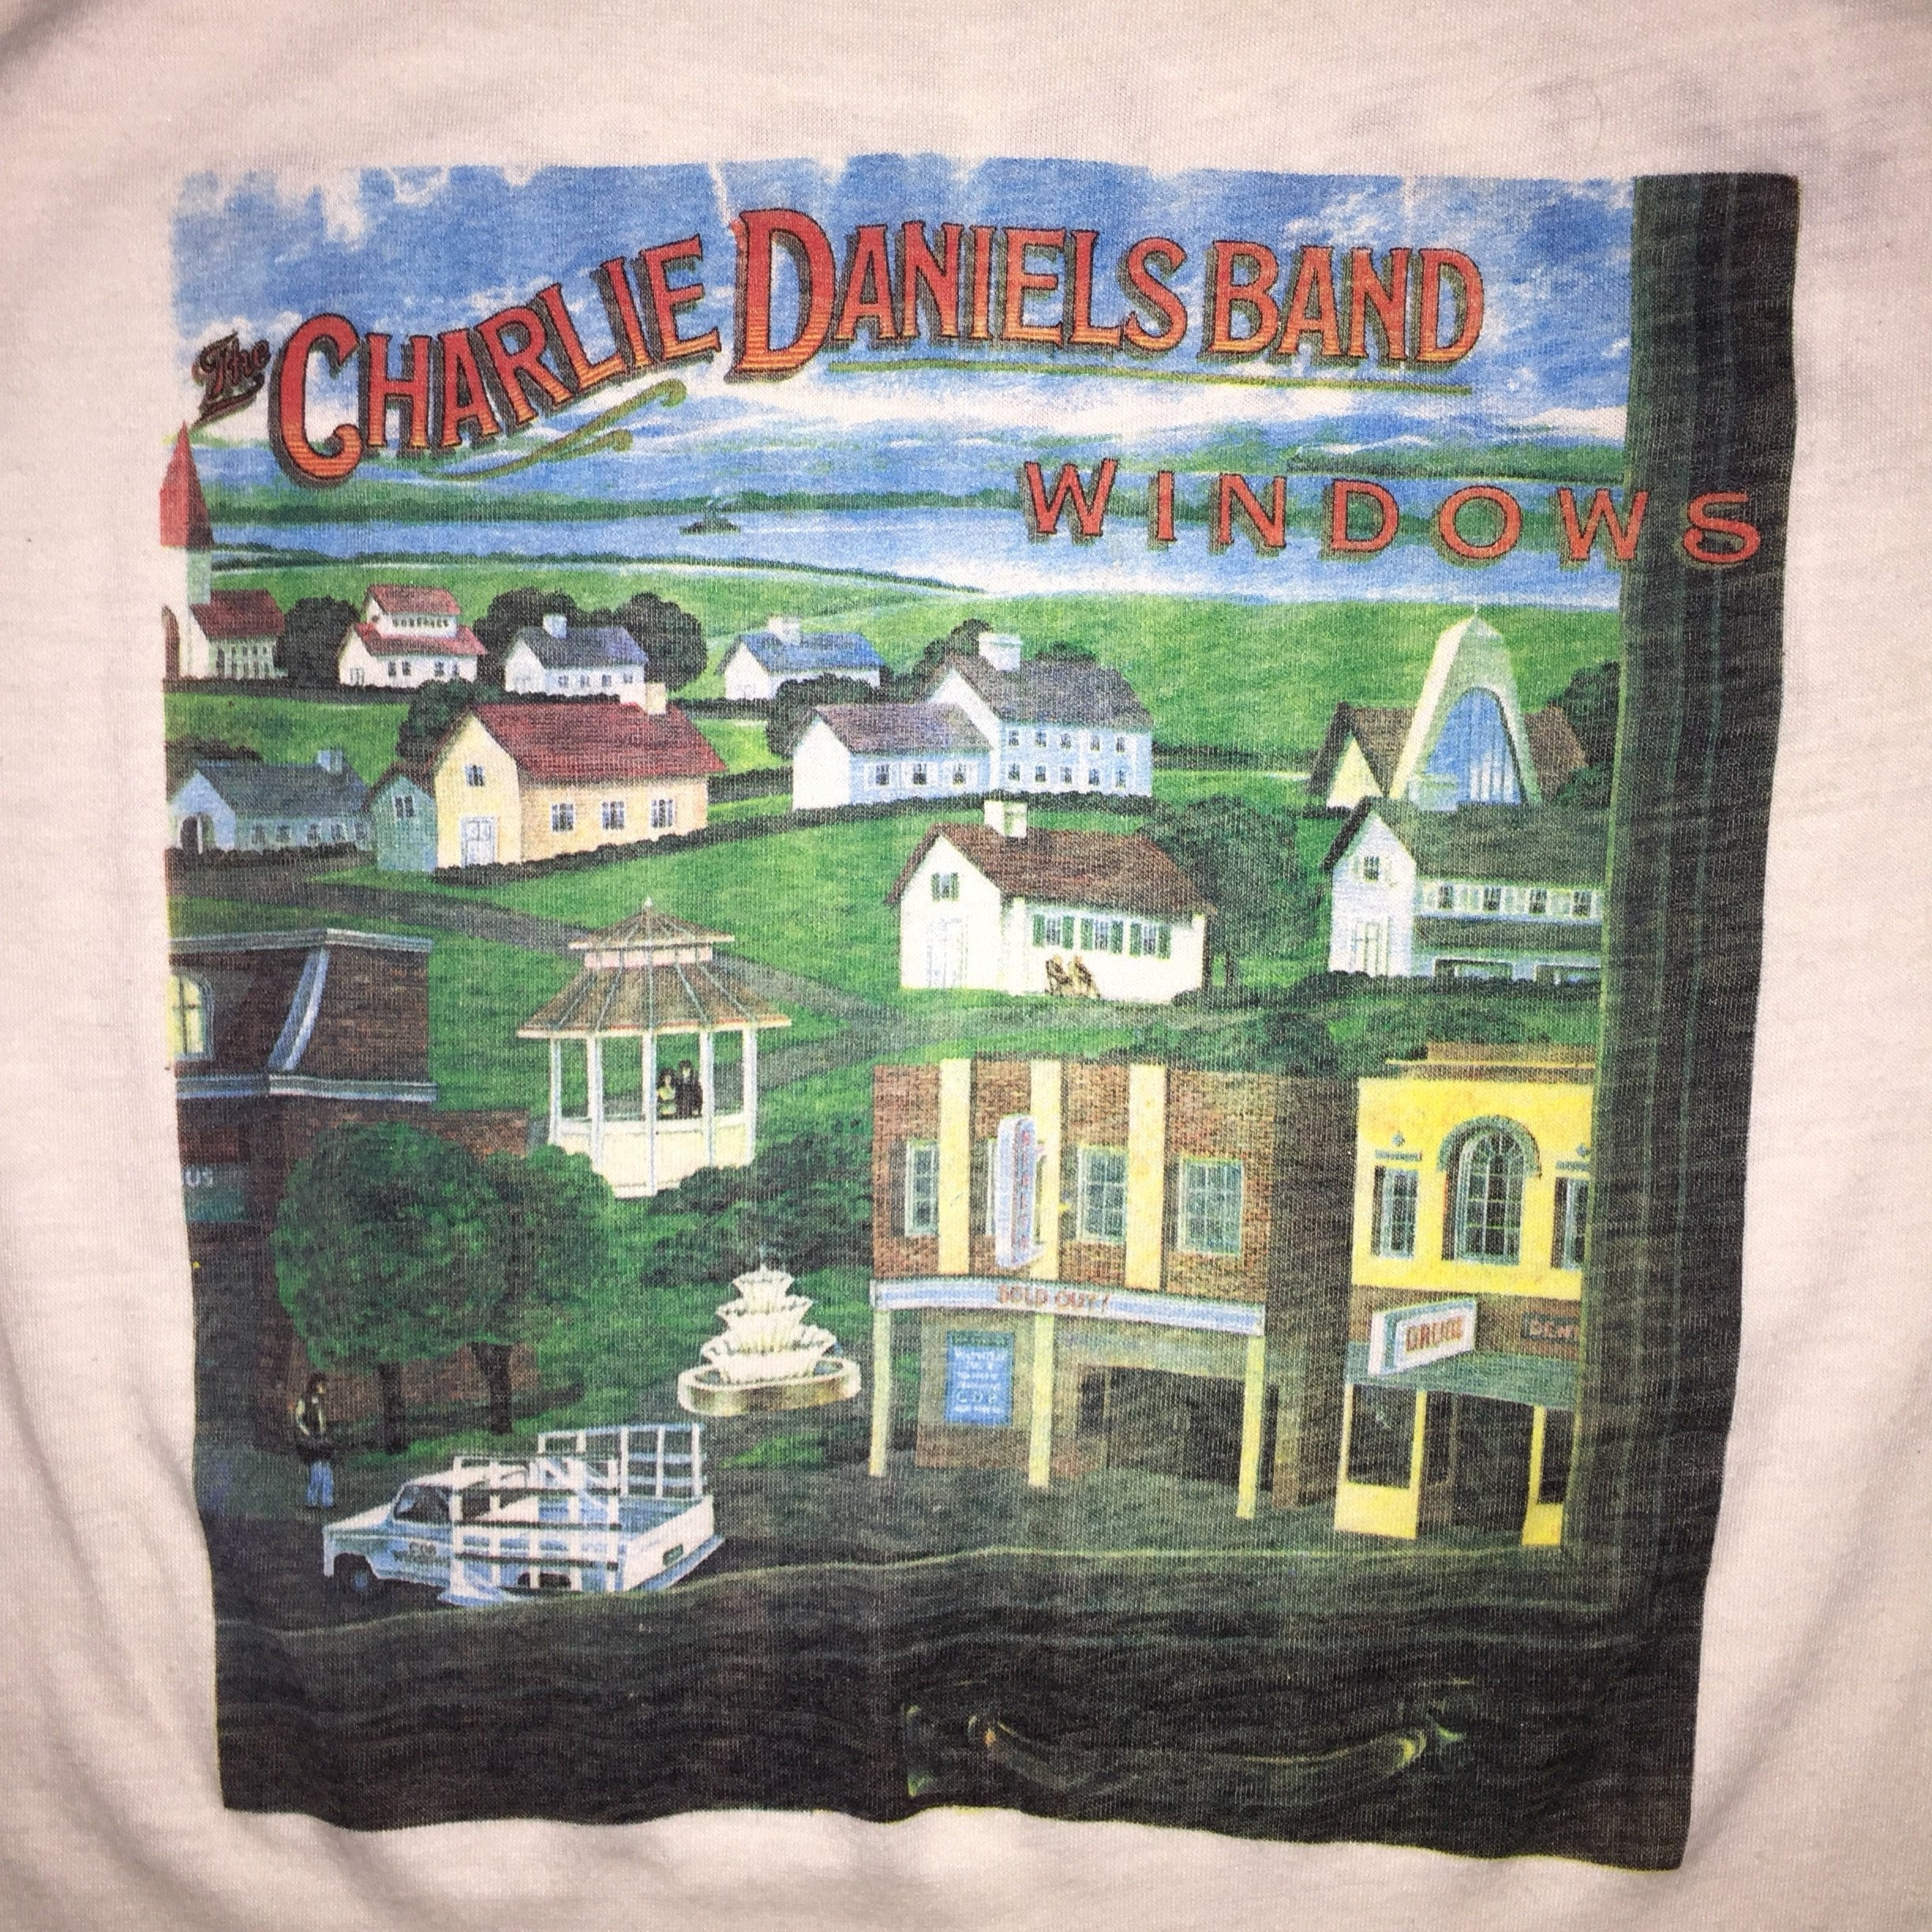 Vintage 1982 Charlie Daniels band windows concert tour t shirt *XS 1DMygy4w83